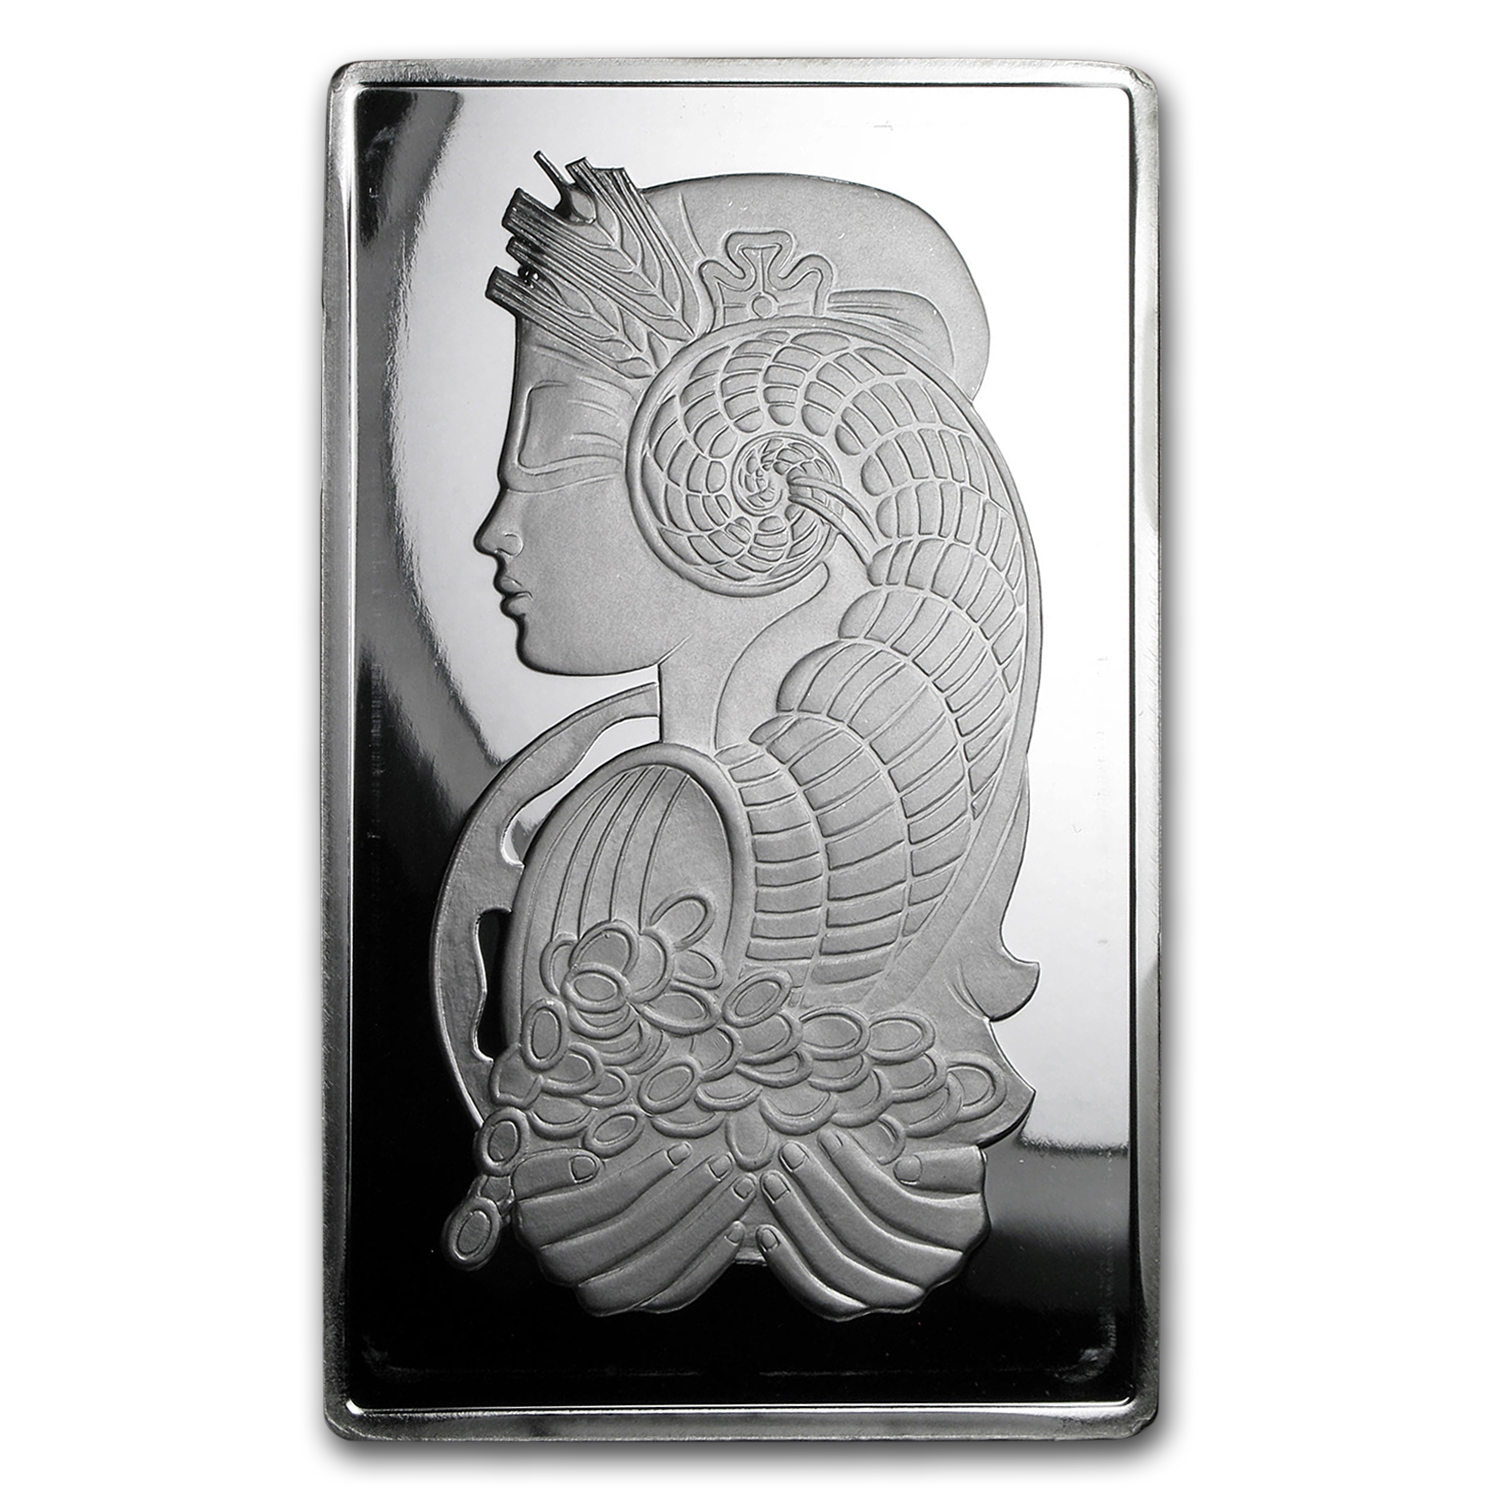 250 Gram Silver Bar Secondary Market All Other Sizes